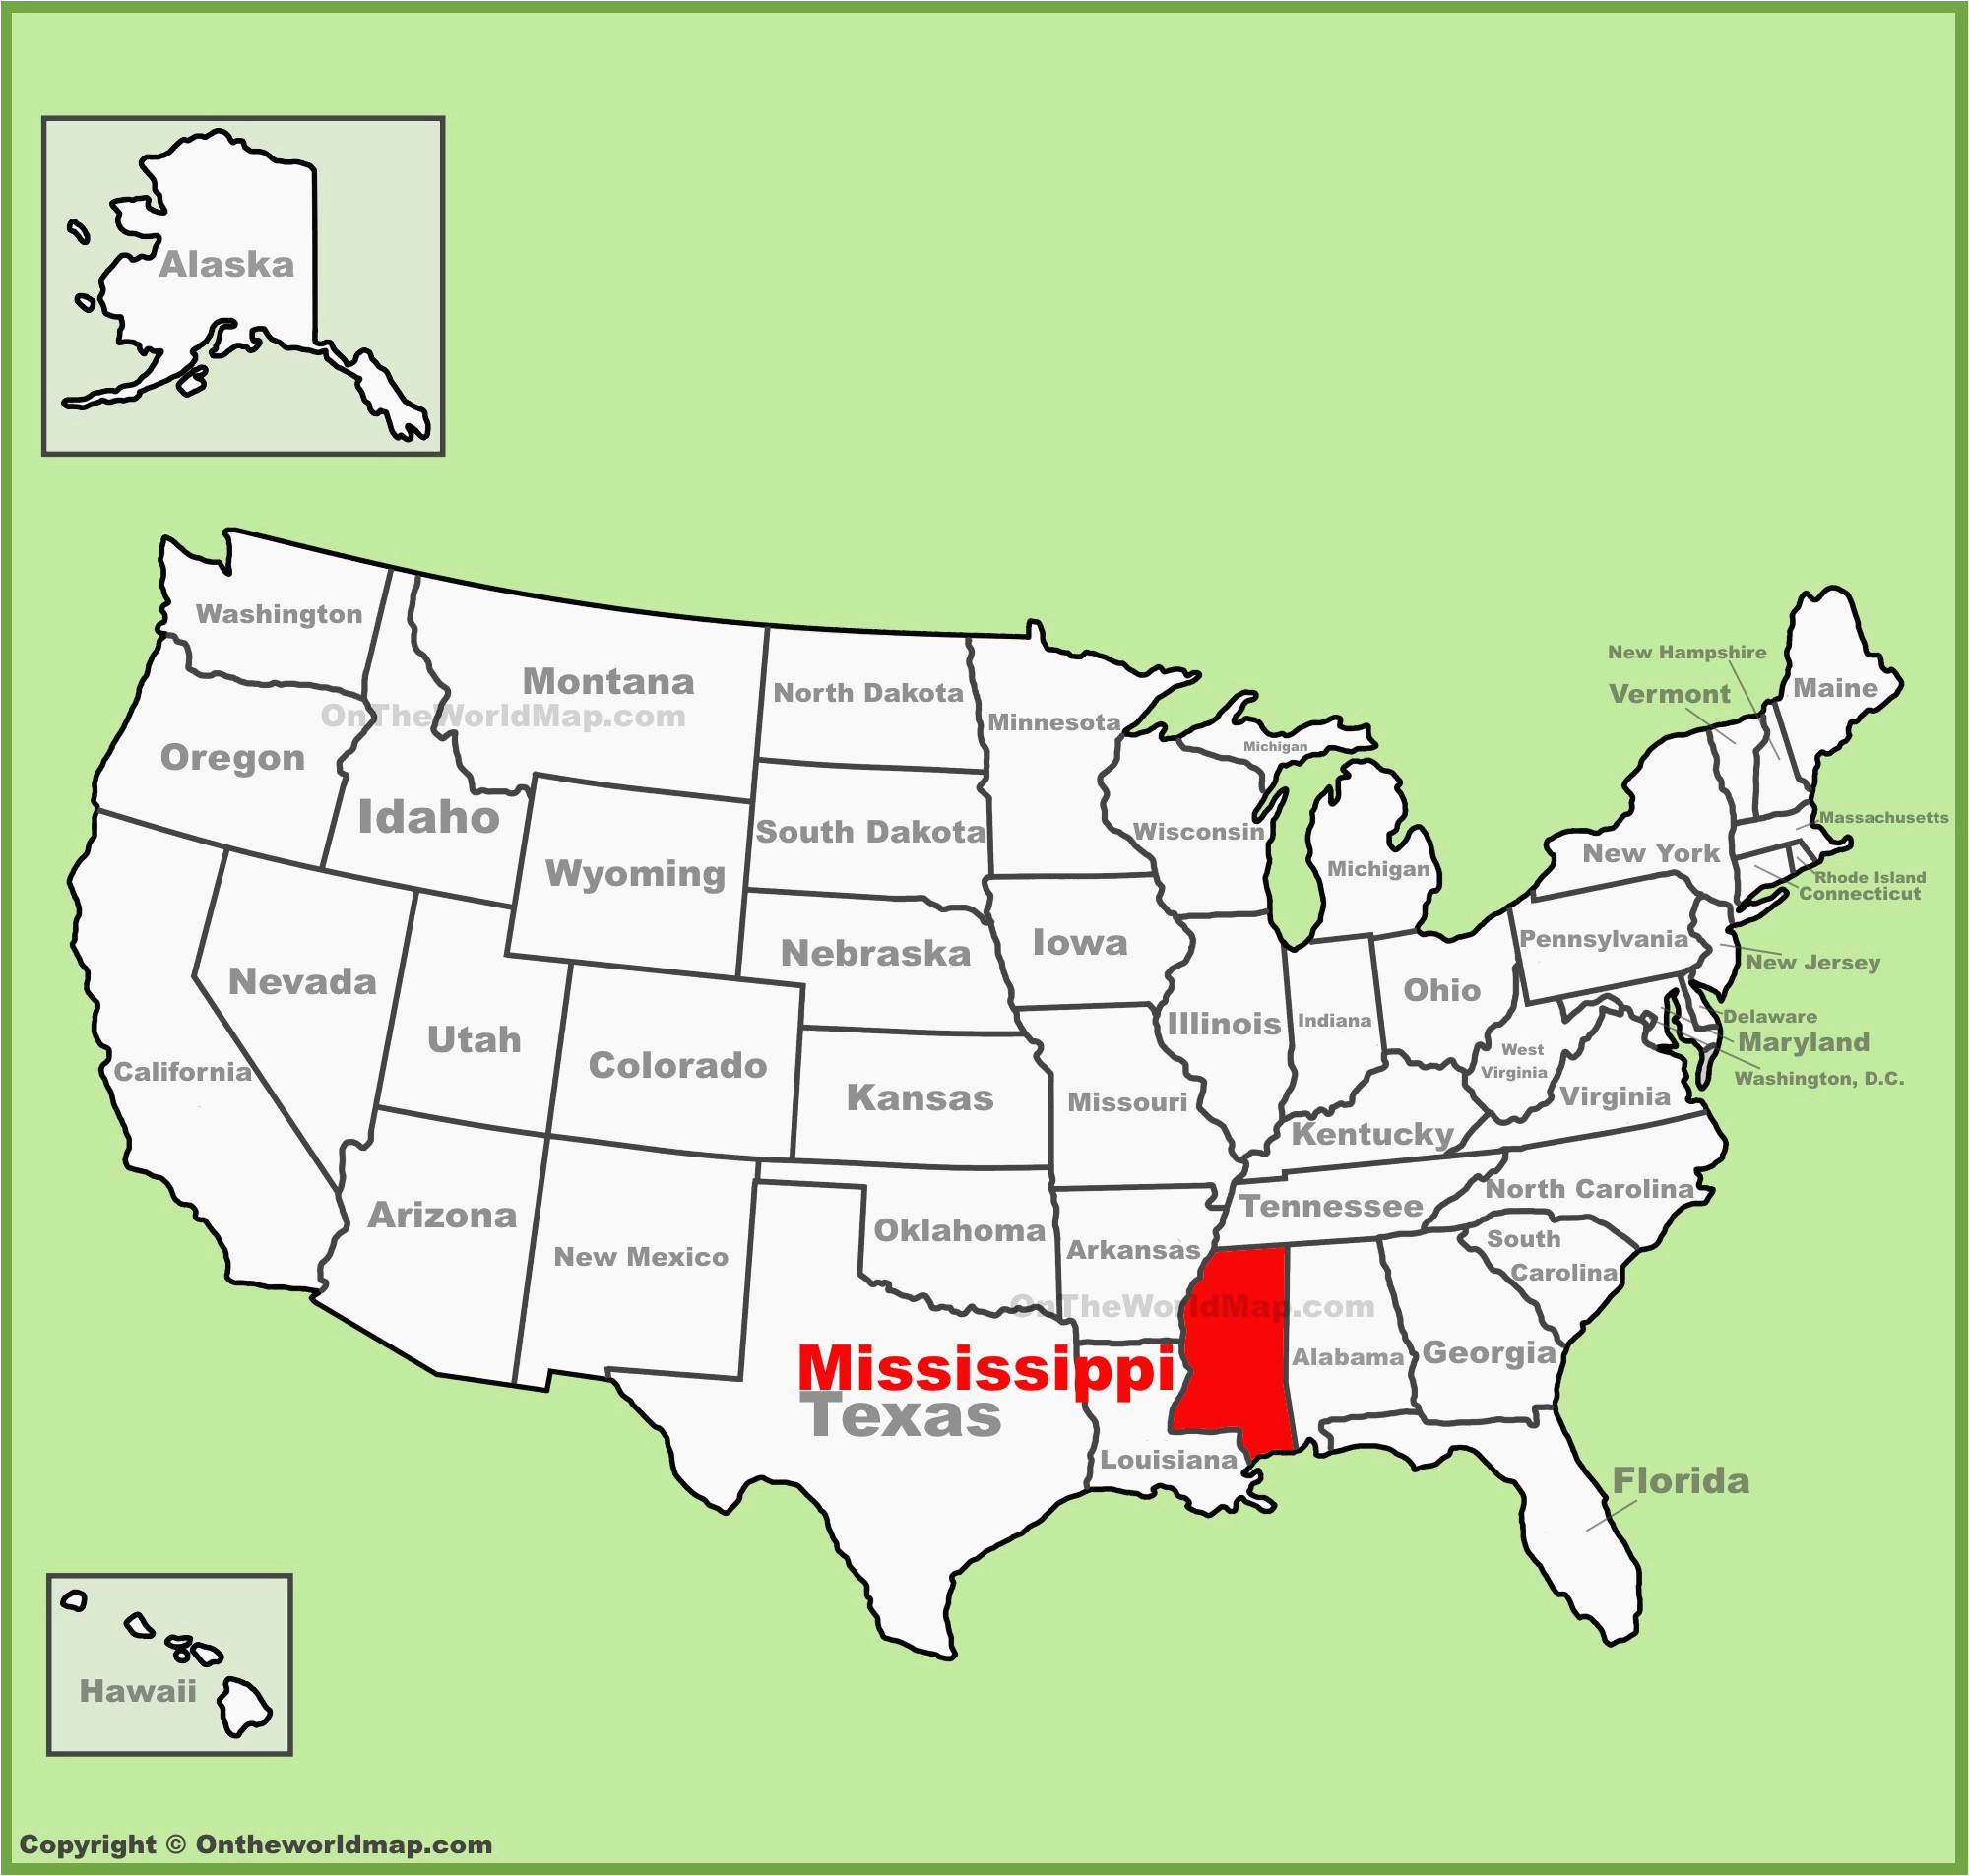 Tennessee Mississippi Map | secretmuseum on weather map mississippi, map of romania, map of japan, map of united arab emirates, map of singapore, us map mississippi, map of netherlands, map of india, map of us territories, map of ireland, map of united kingdom, state flags mississippi, map of australia, road maps mississippi, google maps mississippi, united states map mississippi, map of finland, map of austria, map of thailand, map of denmark,